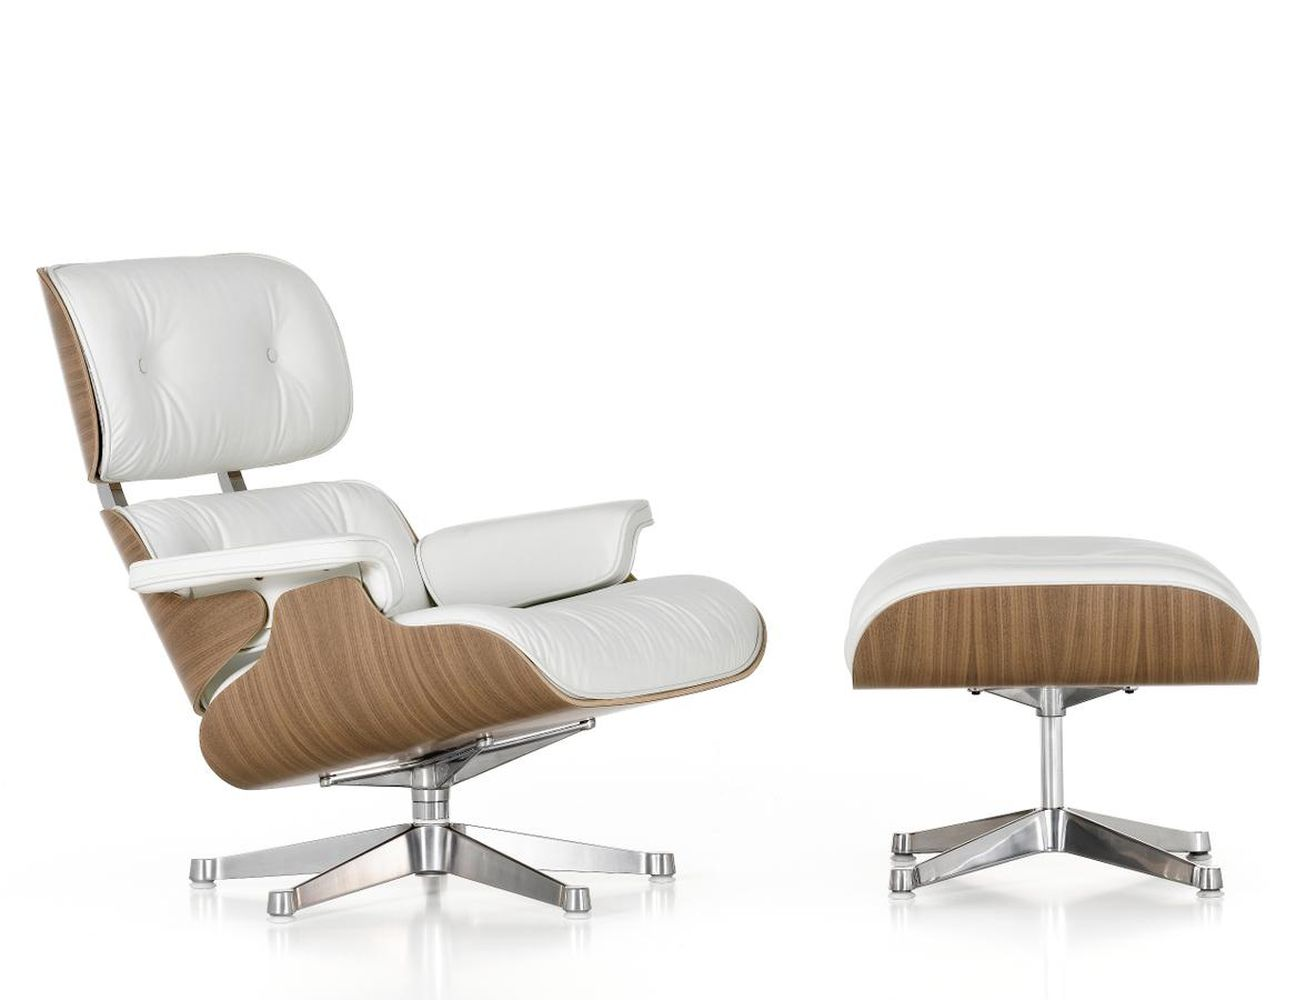 vitra lounge chair and ottoman white